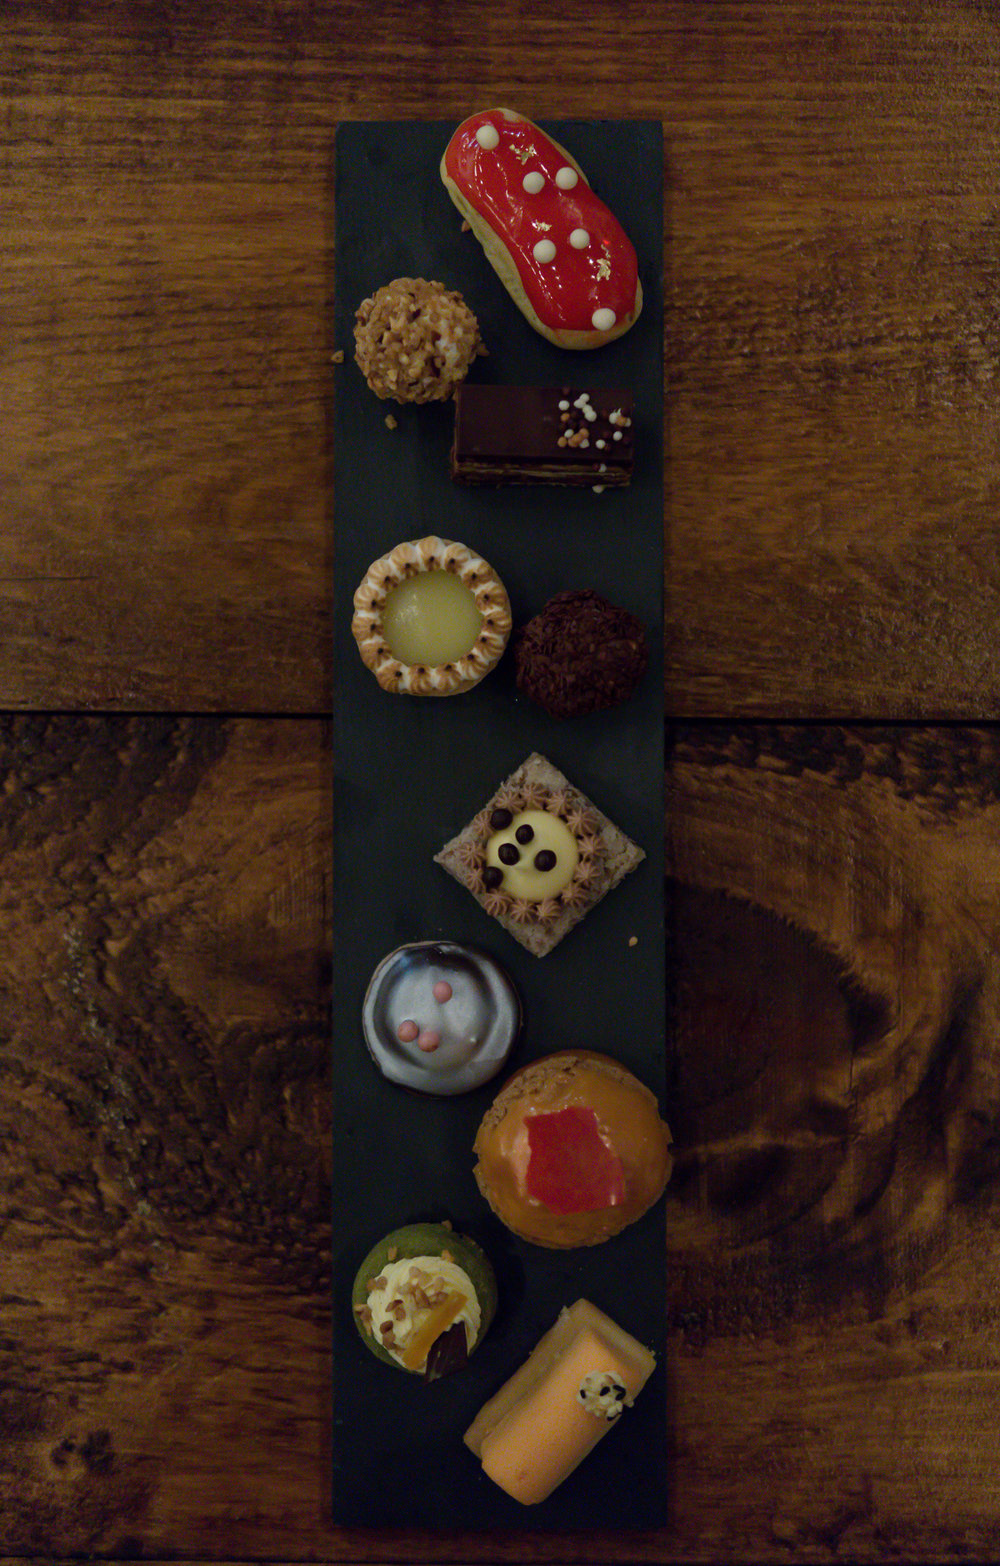 Various Mignardises   by Bertrand Alepee of The Tempered Room